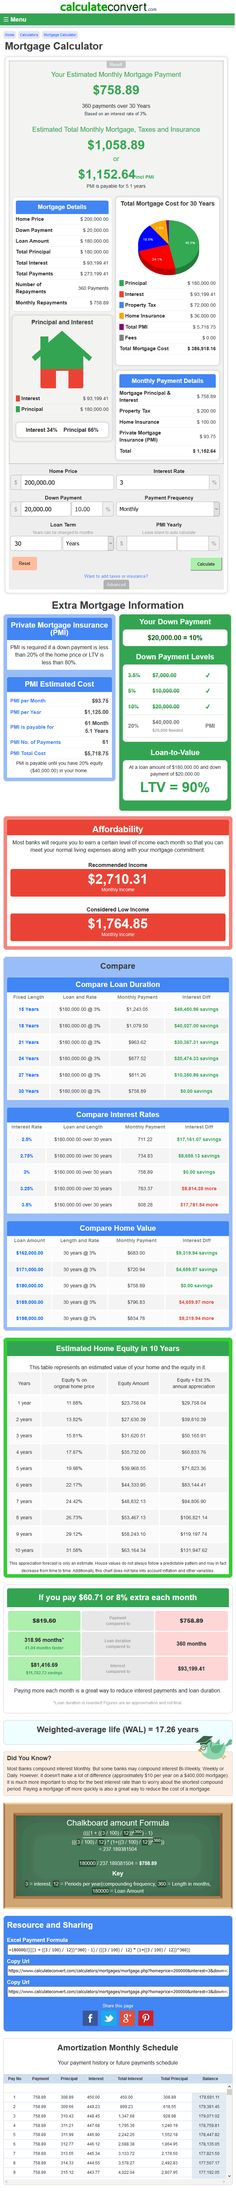 Mortgage Calculator With Amortization Schedule In Excel Templates